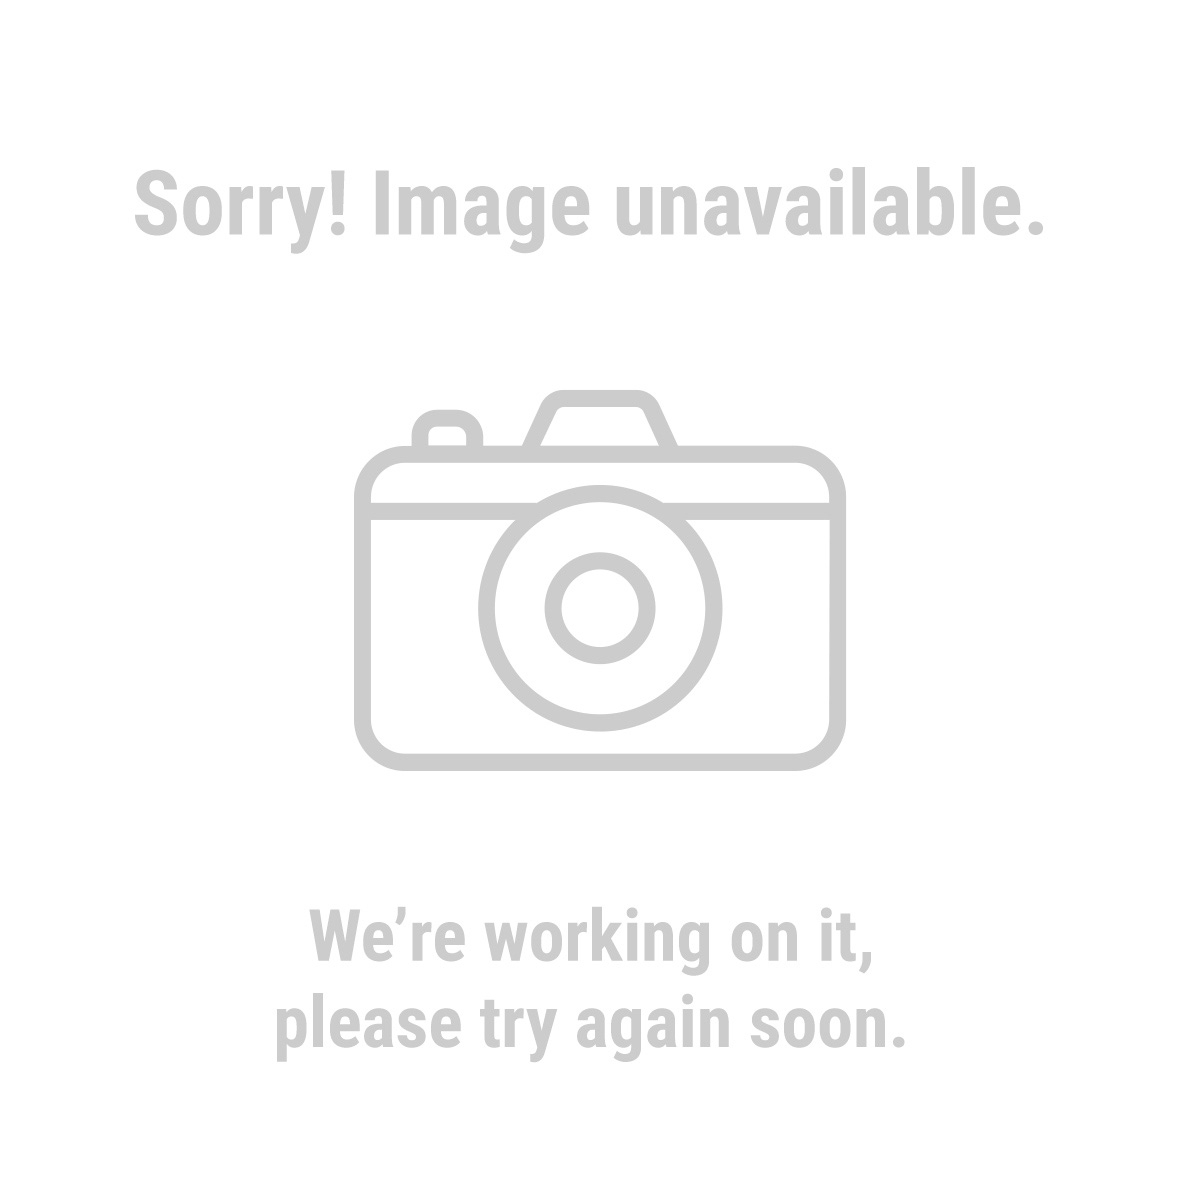 "90997 3"" x 3/4"" Stem Swivel Caster"